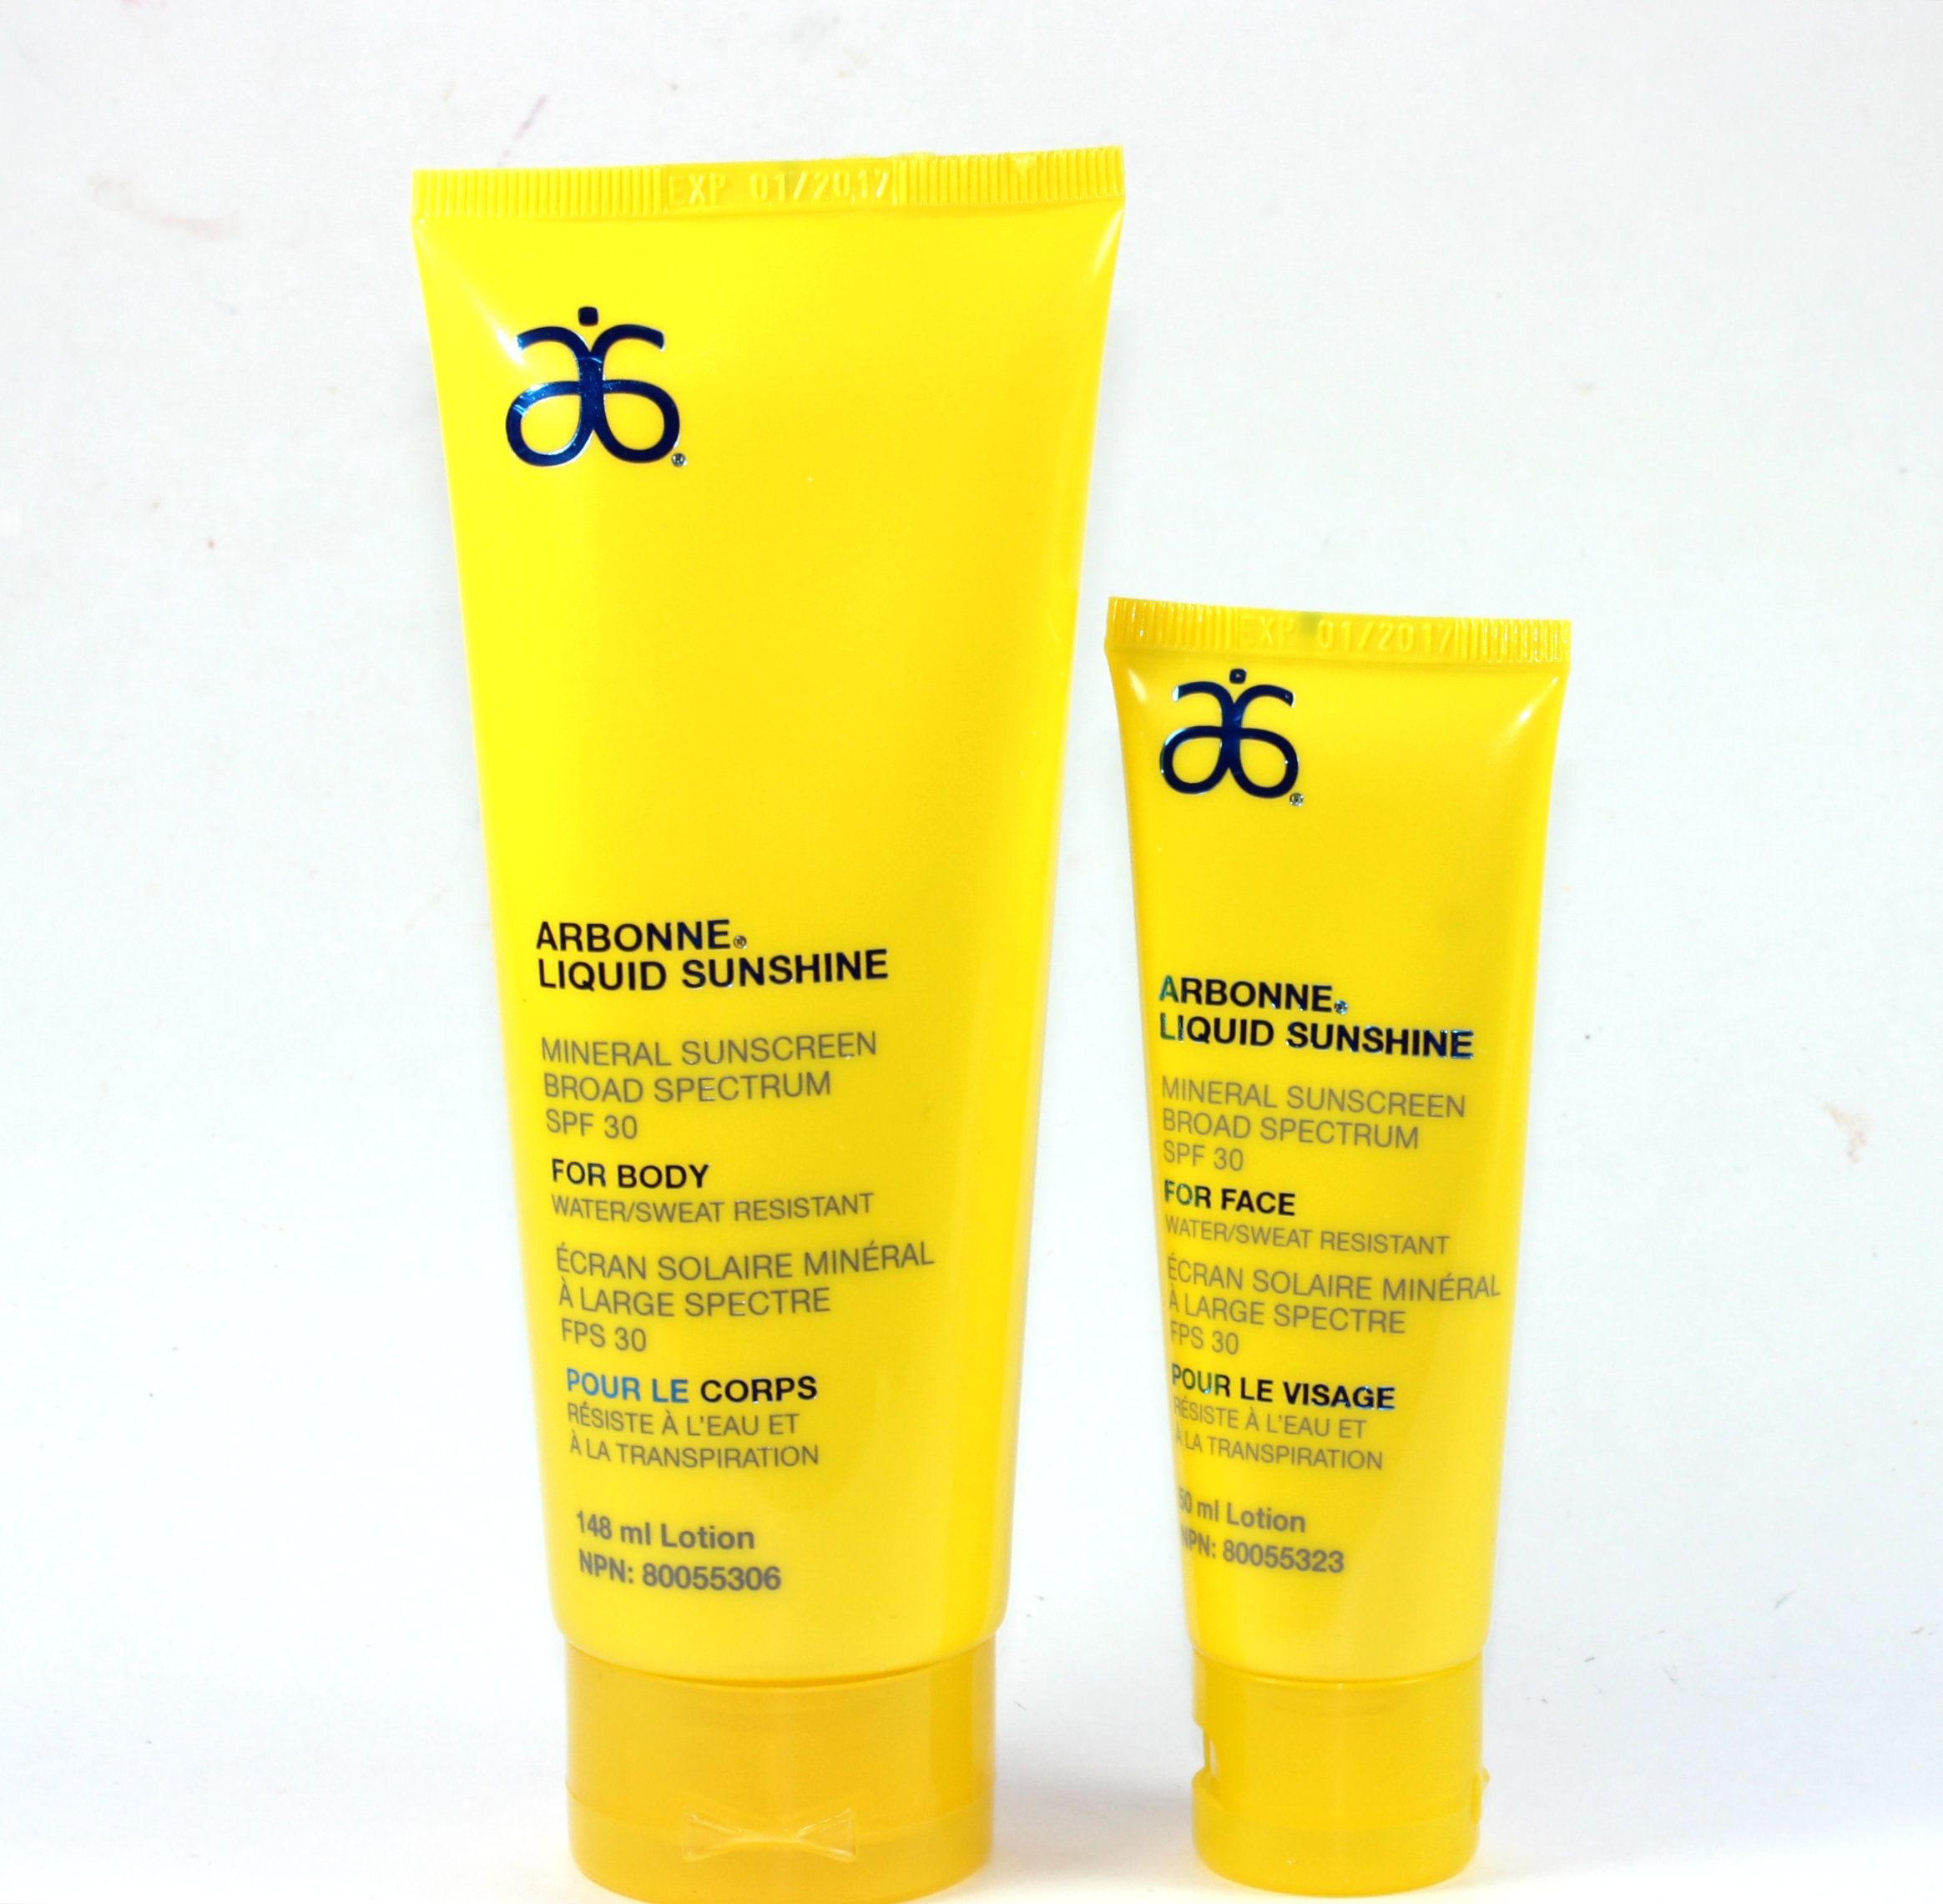 Arbonne Liquid Sunshine Mineral Sunscreen SPF 30 Face & Body - Review - Beautetude